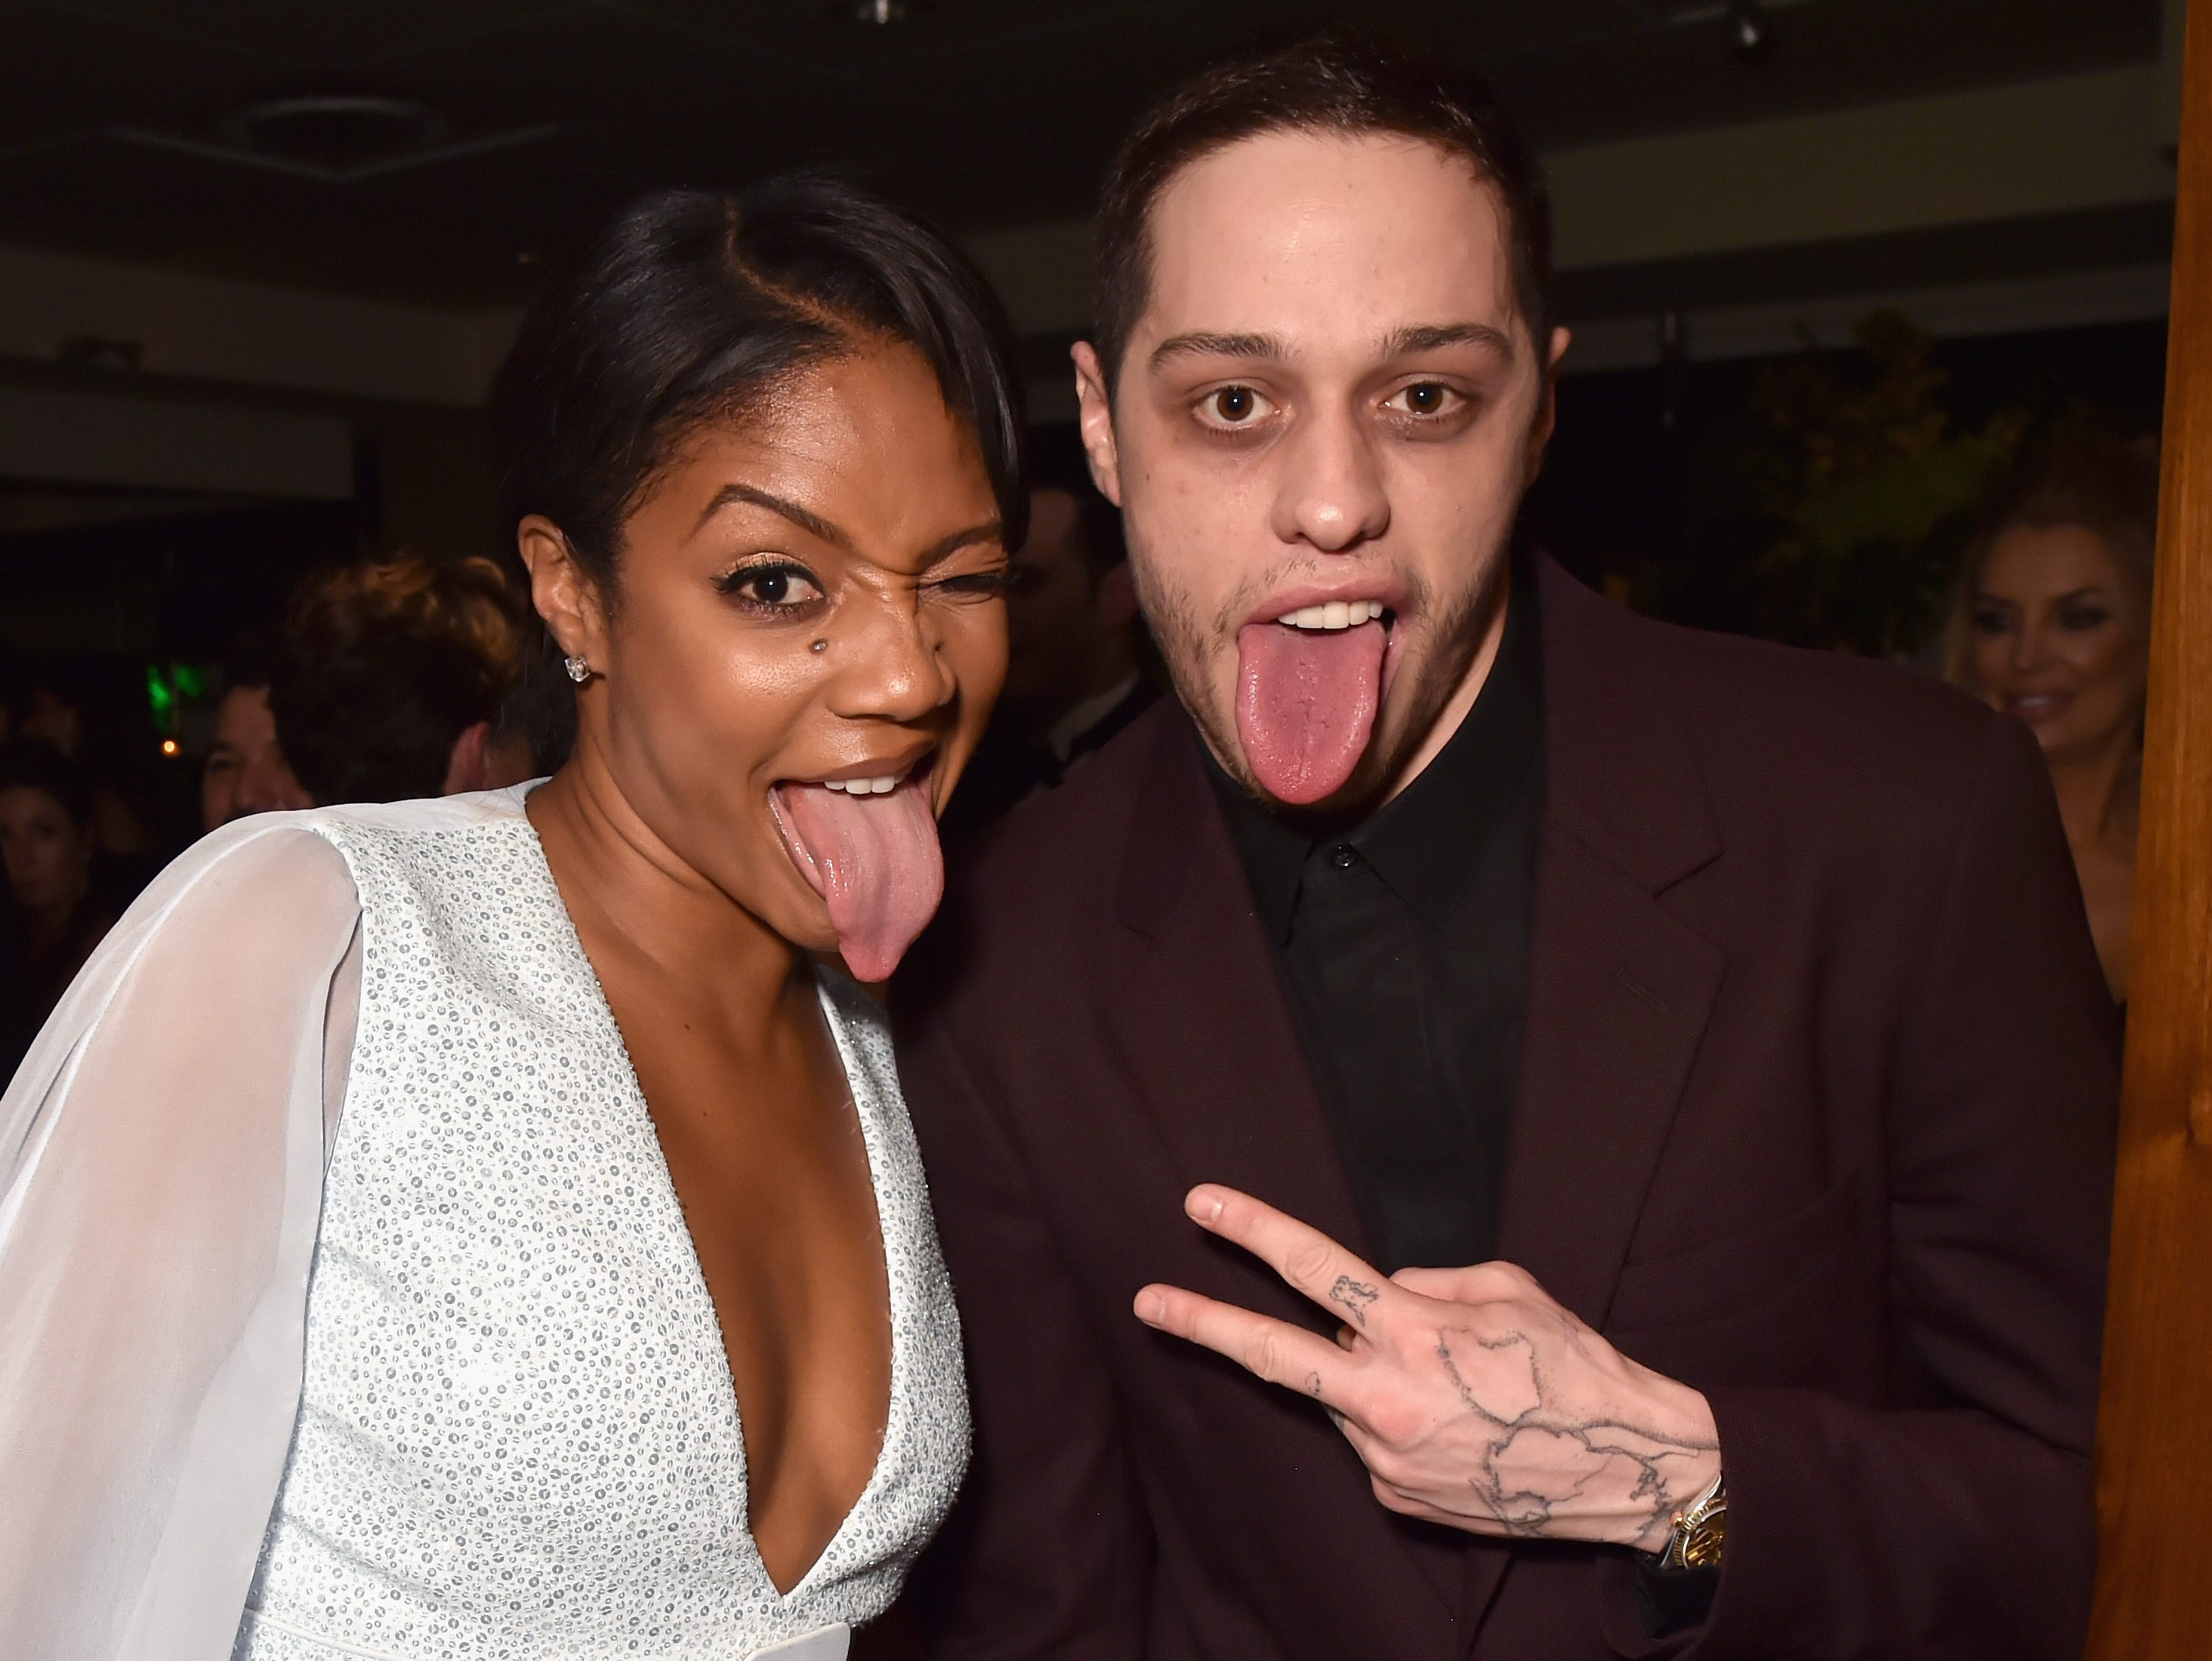 LOS ANGELES, CA - JANUARY 06: Tiffany Haddish (L) and Pete Davidson attend HBO's Official 2019 Golden Globe Awards After Party on January 6, 2019 in Los Angeles, California.  (Photo by Jeff Kravitz/FilmMagic for HBO) ORG XMIT: 775268379 ORIG FILE ID: 1078573724